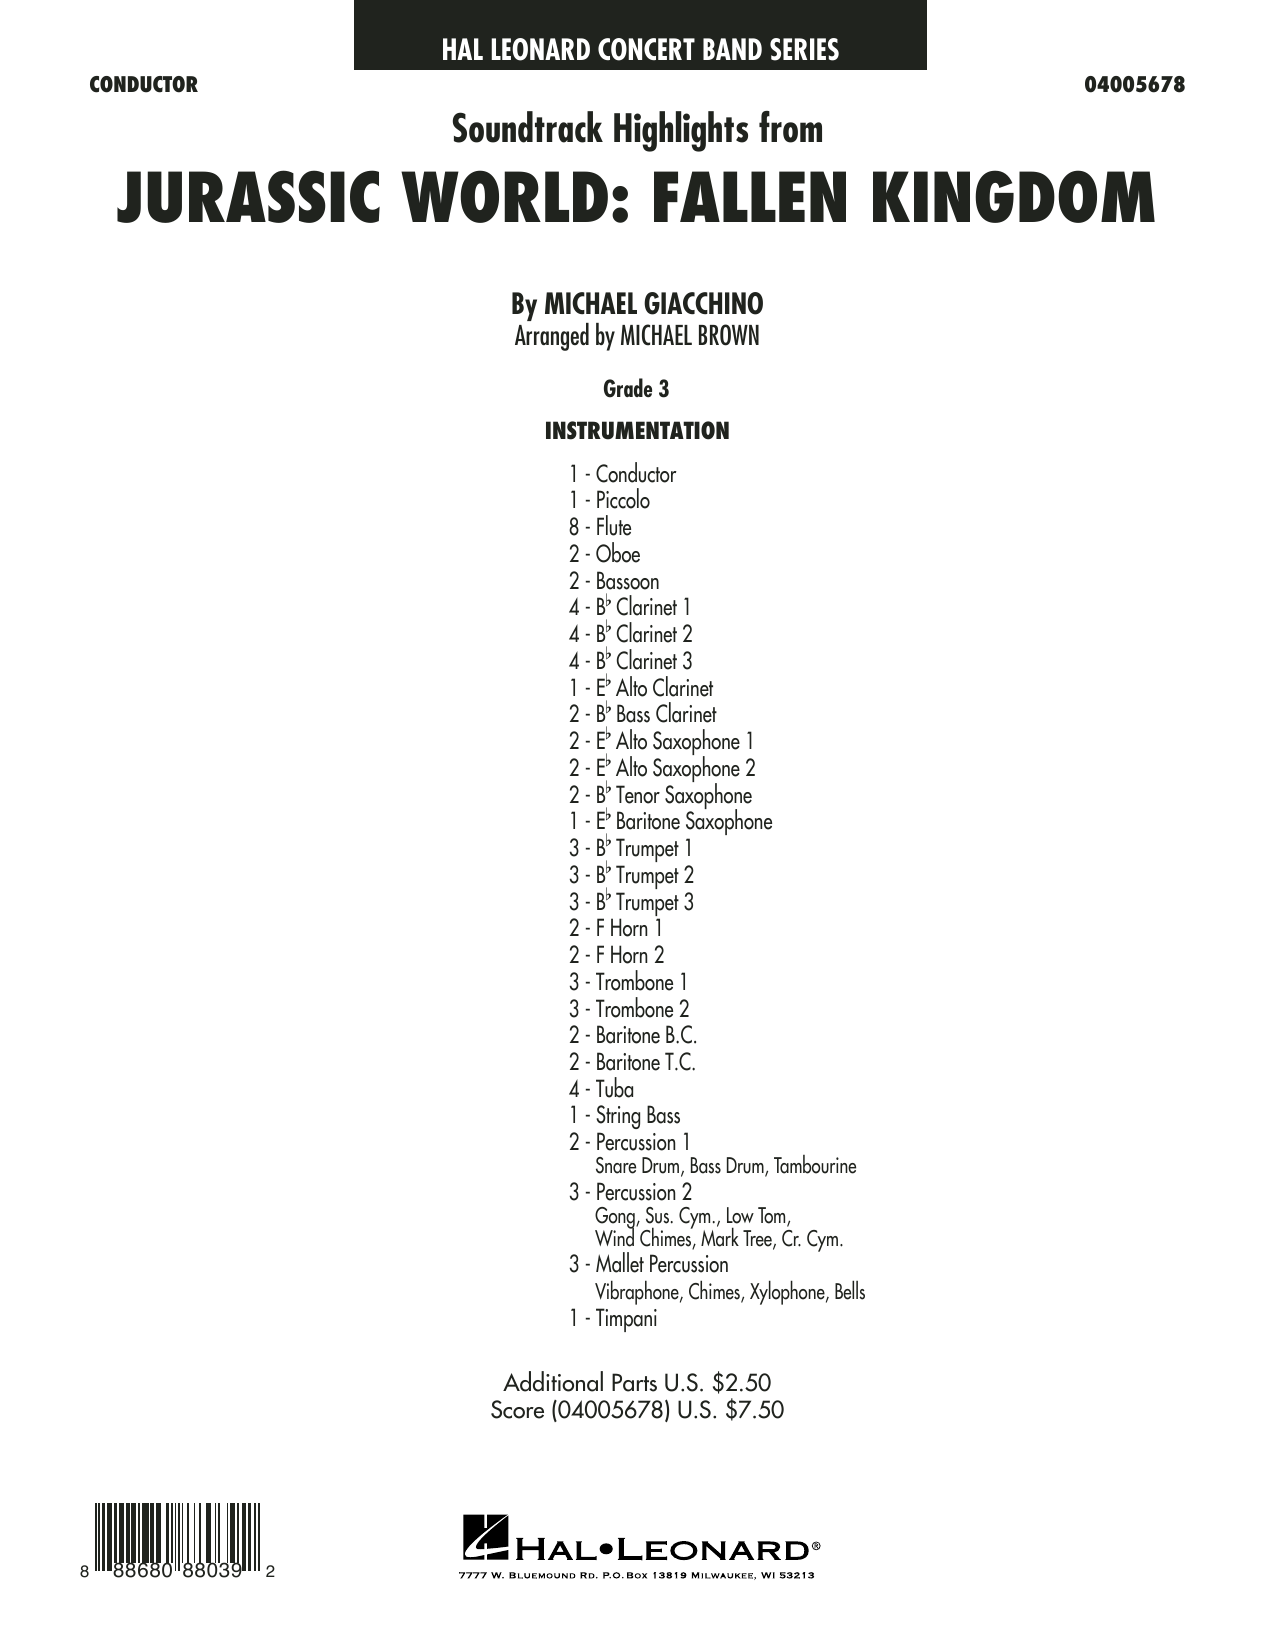 Michael Giacchino Highlights from Jurassic World: Fallen Kingdom (arr. Michael Brown) - Conductor Score (Full Score) sheet music preview music notes and score for Concert Band including 19 page(s)